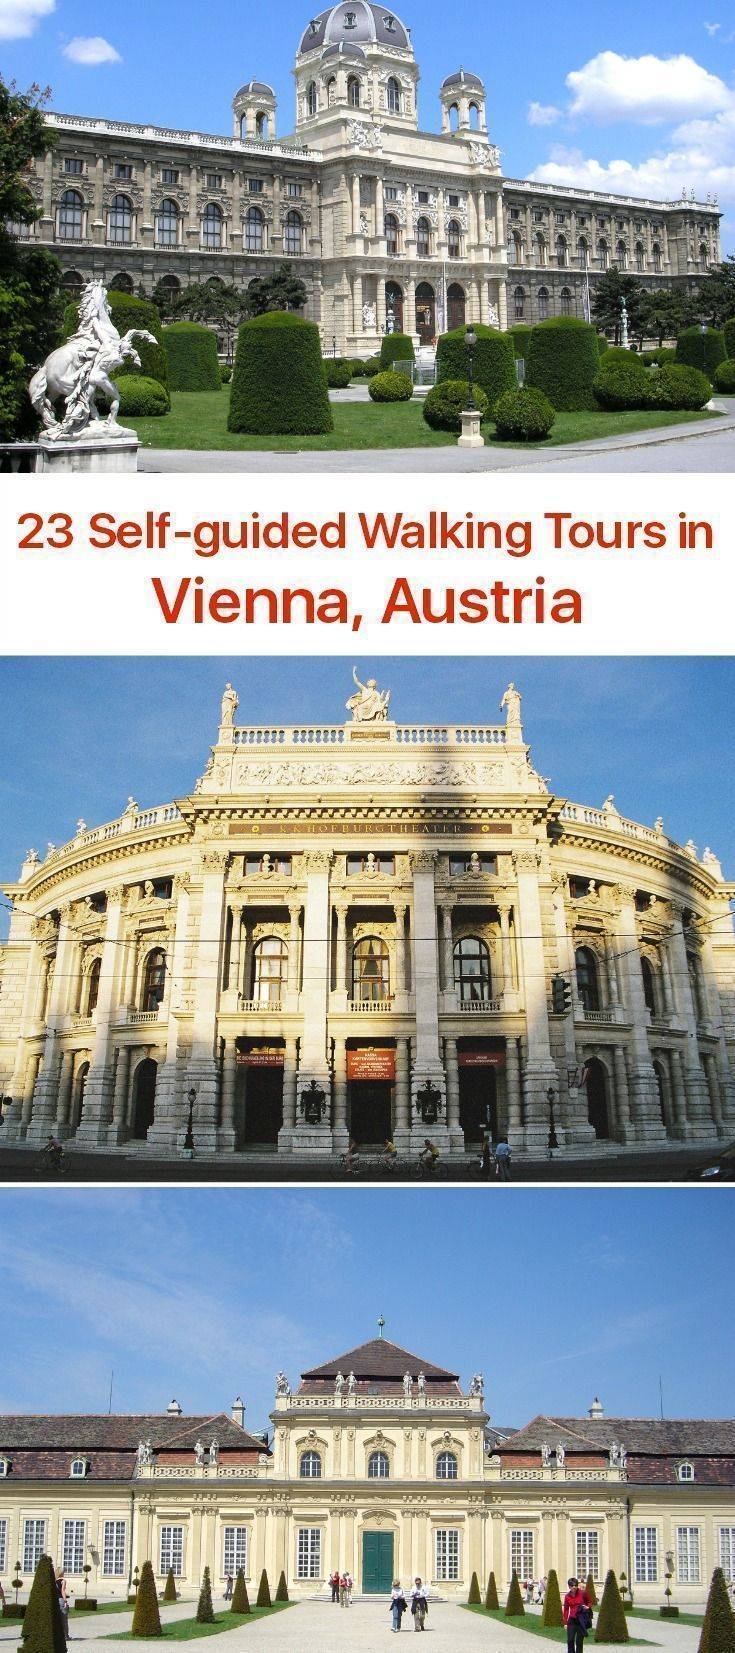 Symbol of elegance and imperial chic, the city of Vienna lives up to the legacy of its grand past, remaining one of the key tourist destinations of the Old World.  Millions of visitors flock to the city each year to appreciate the beauty of the Austrian capital and many good things associated with it.